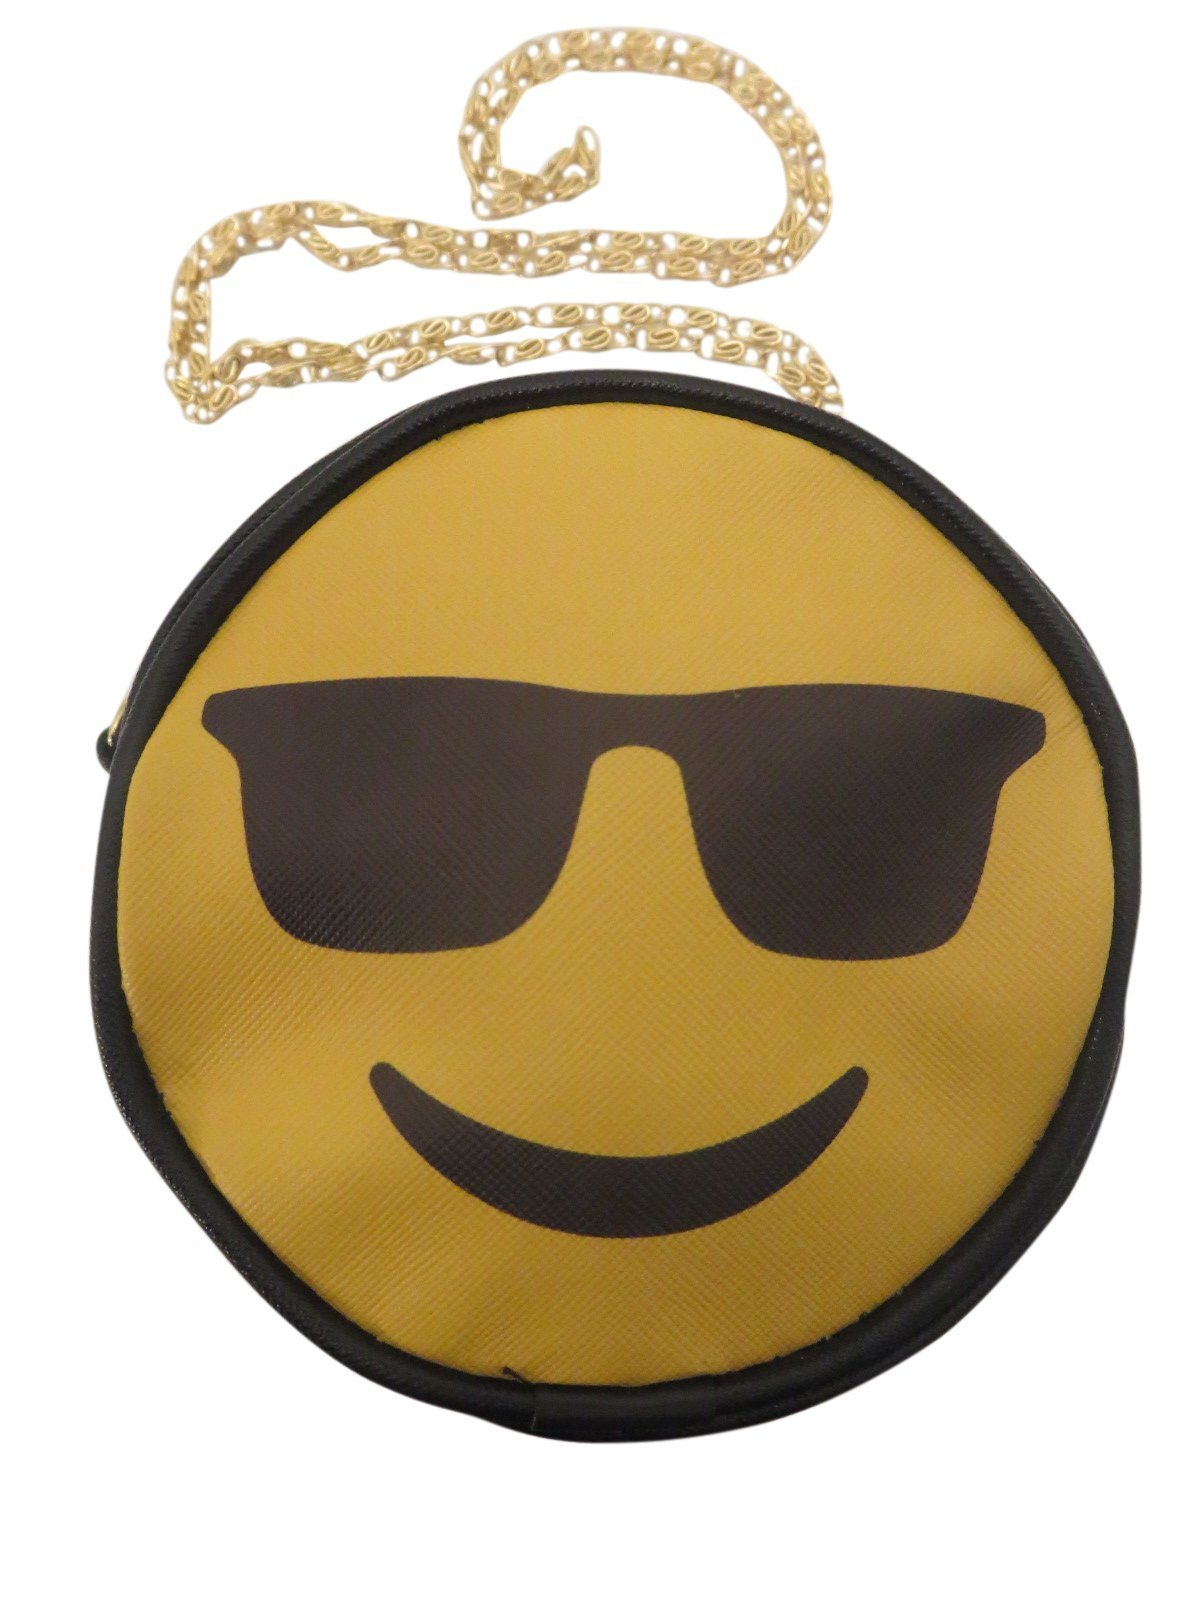 Crossbody bags Purse for Kids - Emoji Messenger Bag for Girls - Small with Gold Chain - Converts to Purse (sunglasses)